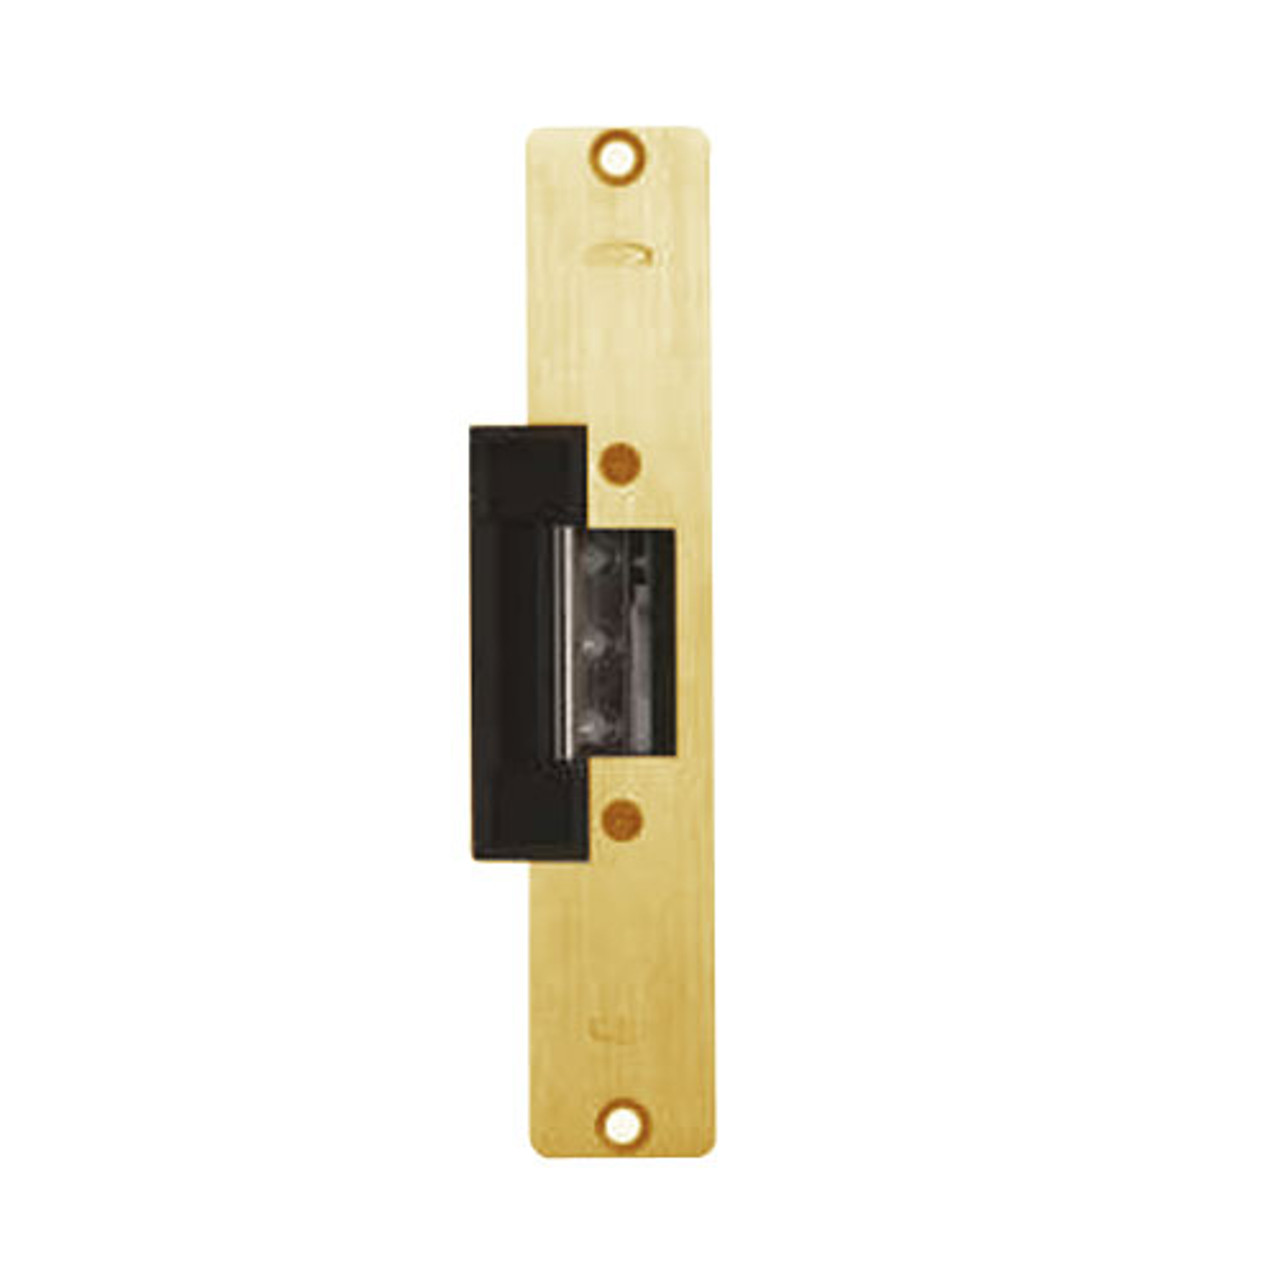 2678-US10-24DC Trine Light Commercial Adjustable 2000 Series Electric Strikes in Satin Bronze Finish